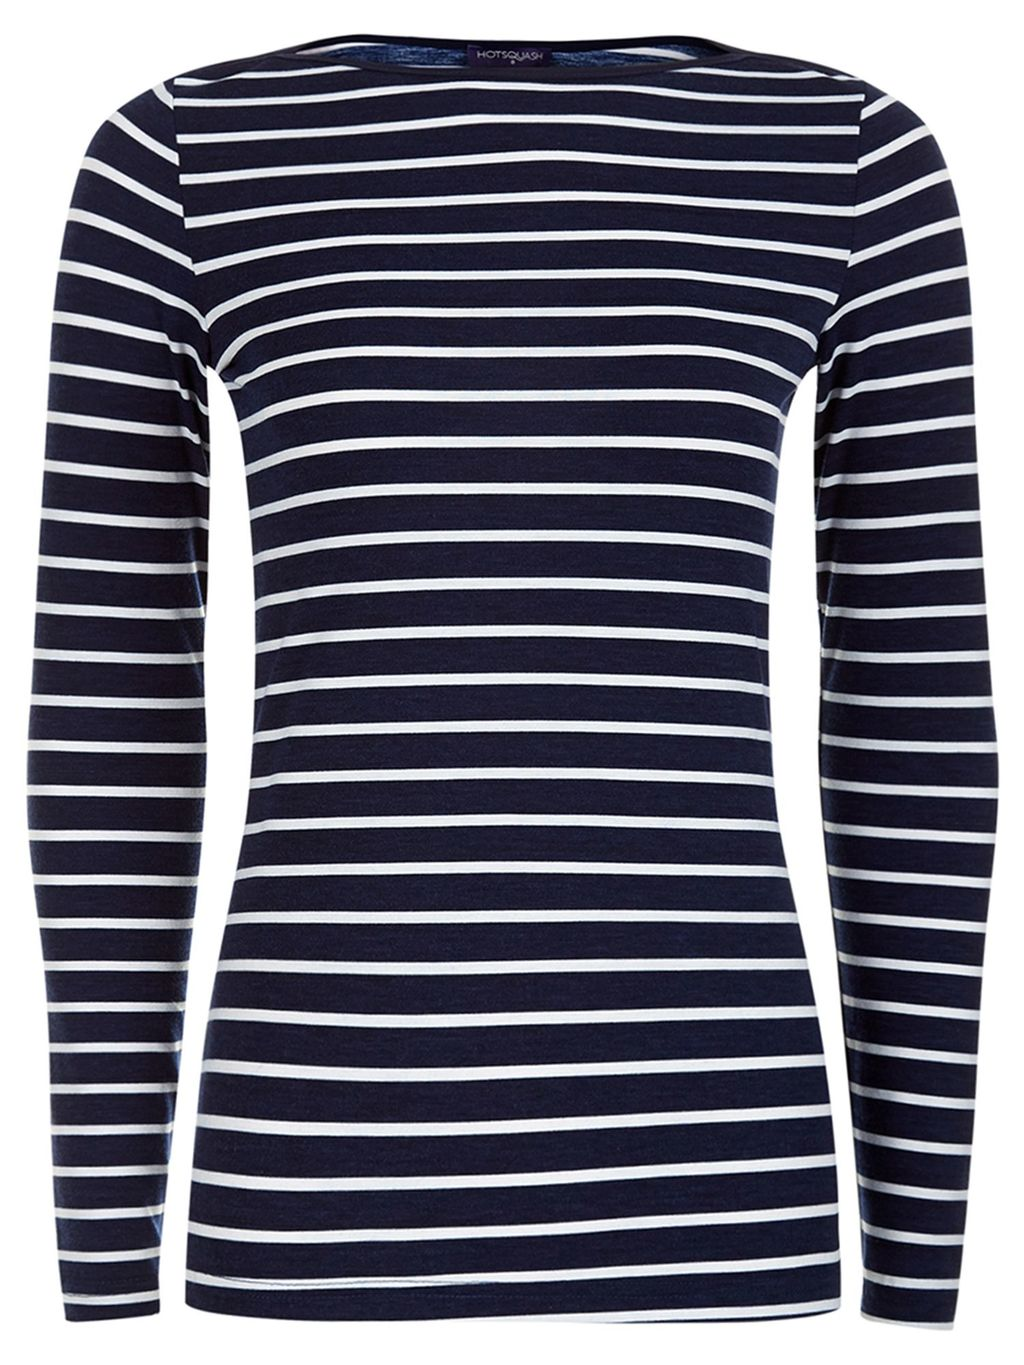 Close Fitting Boat Neck Top, Navy & White - neckline: round neck; pattern: horizontal stripes; secondary colour: white; predominant colour: navy; occasions: casual, creative work; length: standard; style: top; fibres: polyester/polyamide - mix; fit: body skimming; sleeve length: long sleeve; sleeve style: standard; pattern type: knitted - fine stitch; texture group: jersey - stretchy/drapey; pattern size: big & busy (top); season: s/s 2016; wardrobe: basic